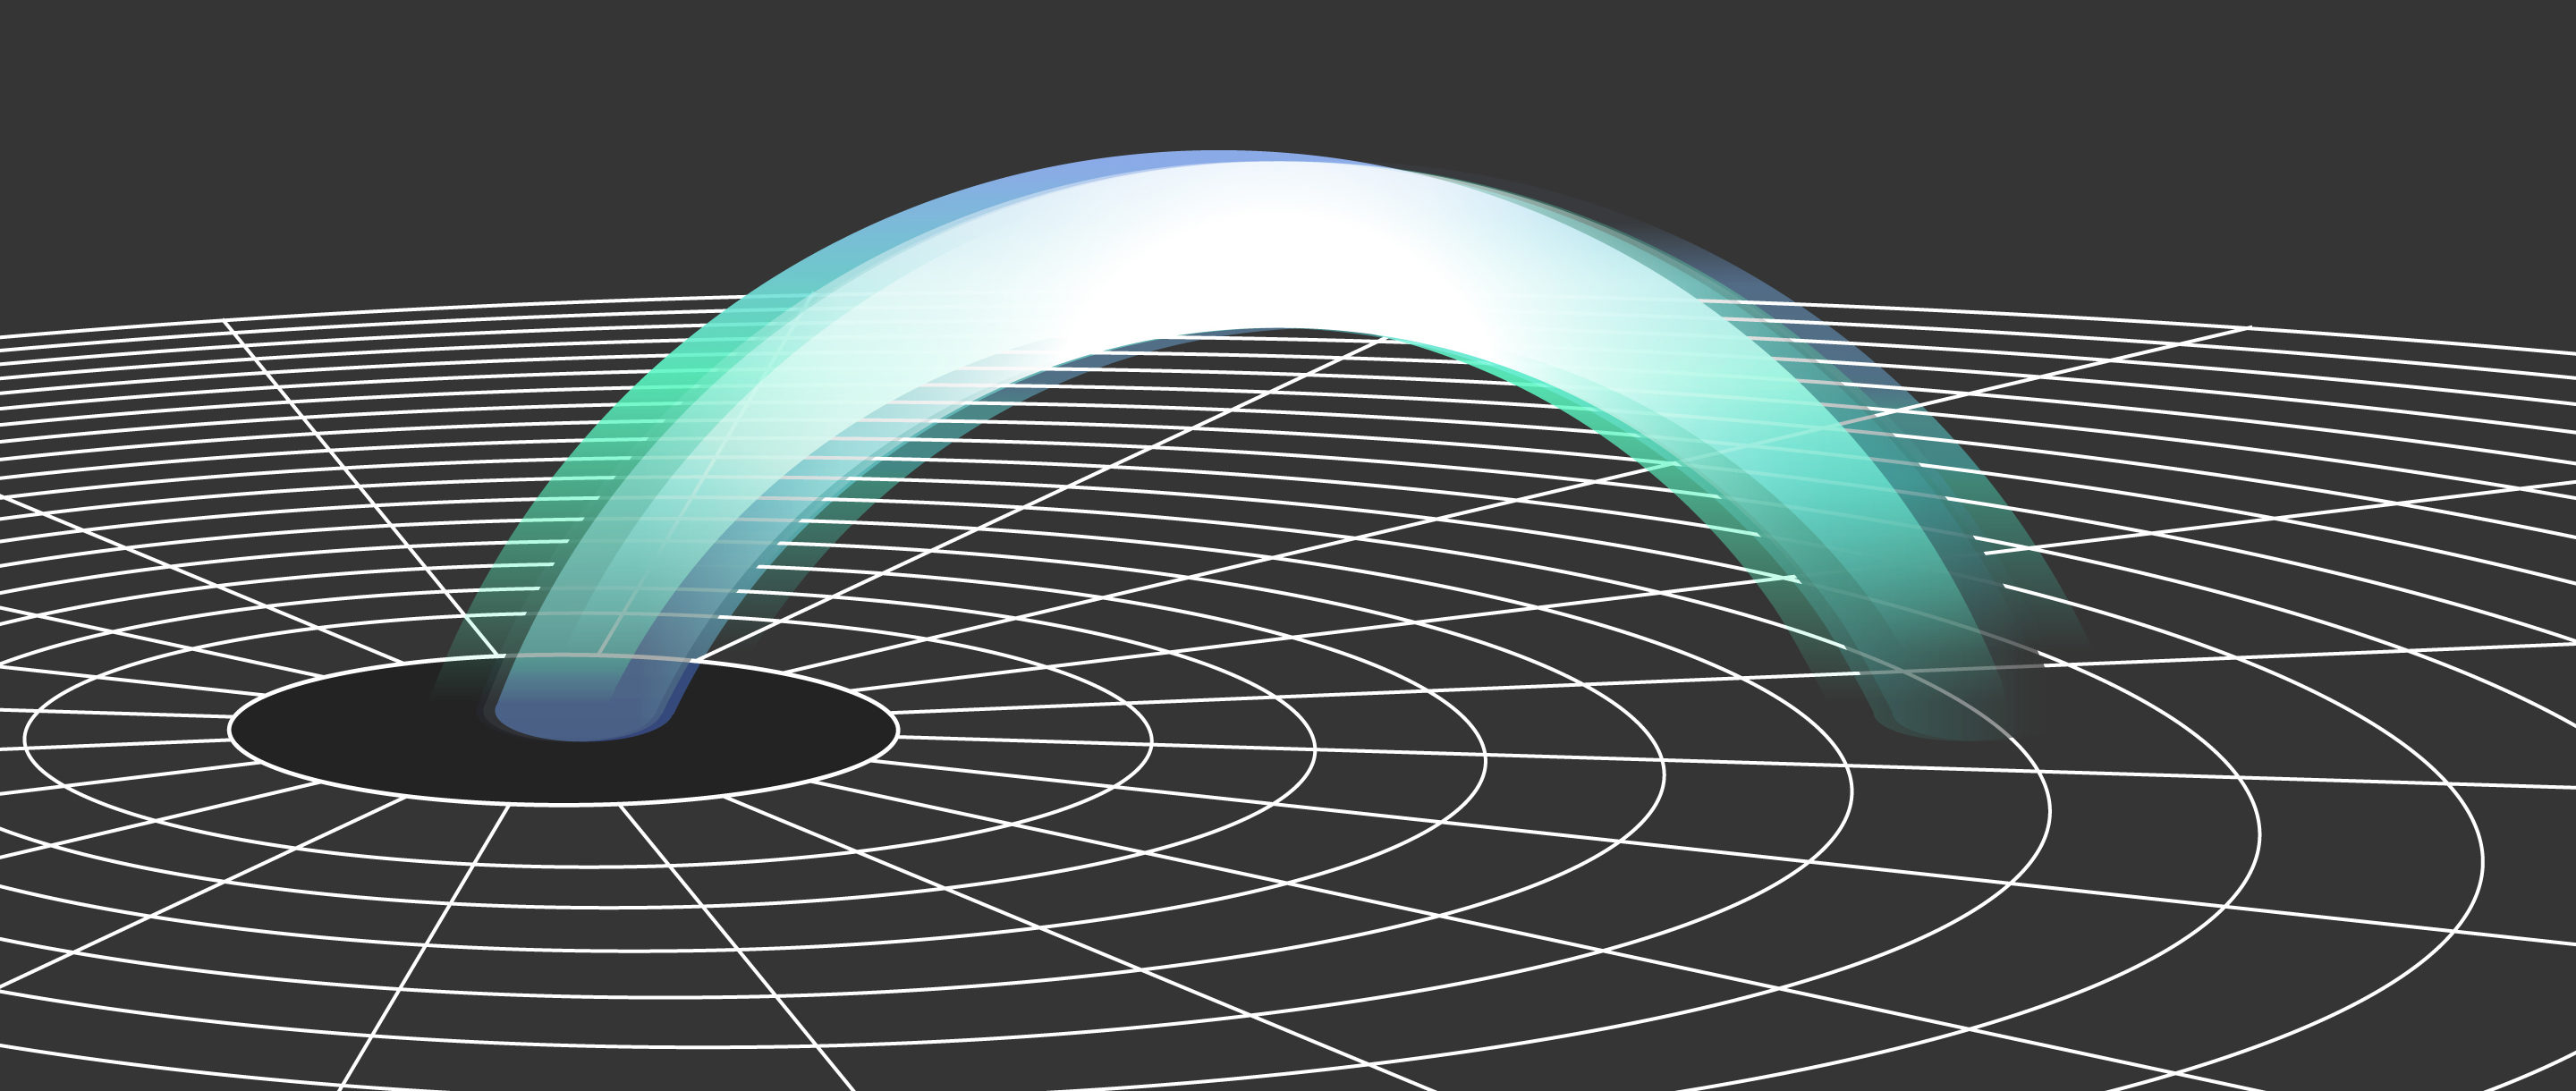 Illustration of a circle representing a black hole on a flat black plane with a multicolored bridge rising out of the plane and spanning from the inside to the outside of the circle.